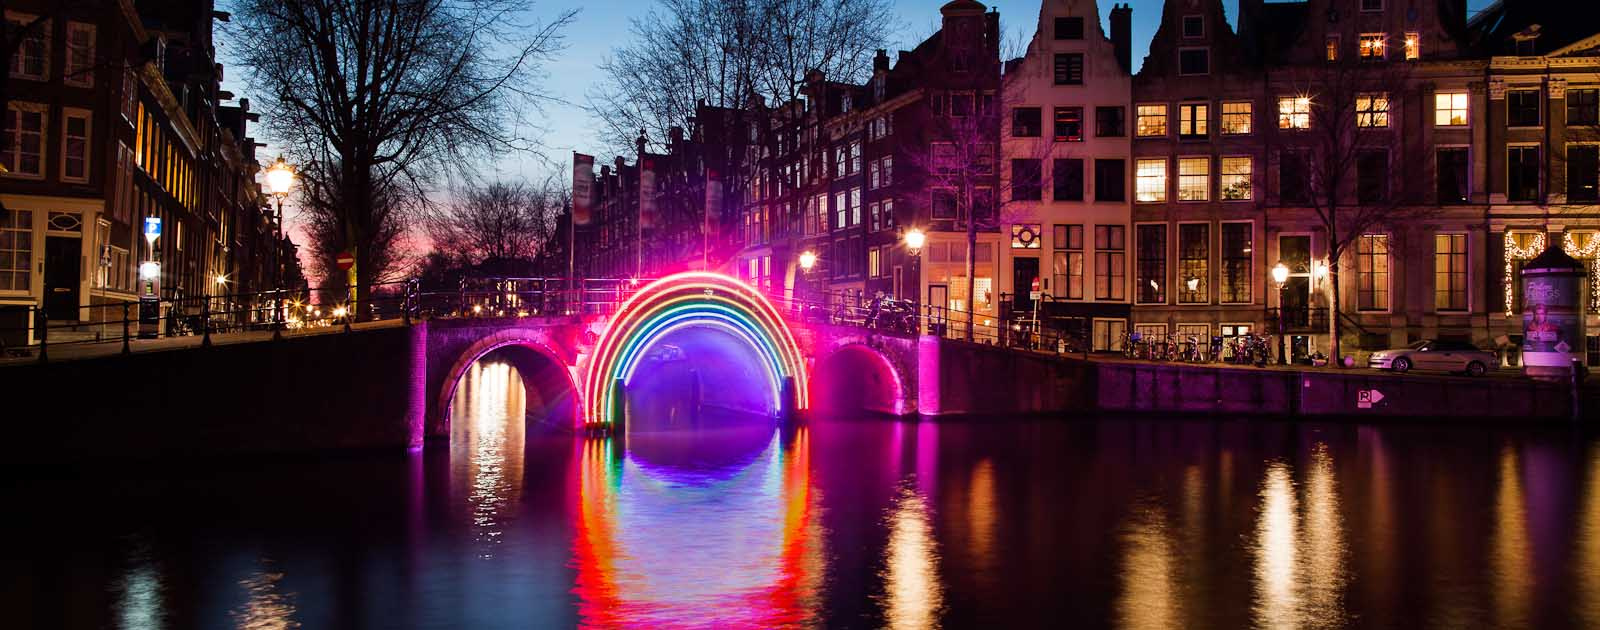 Bridge of the Rainbow